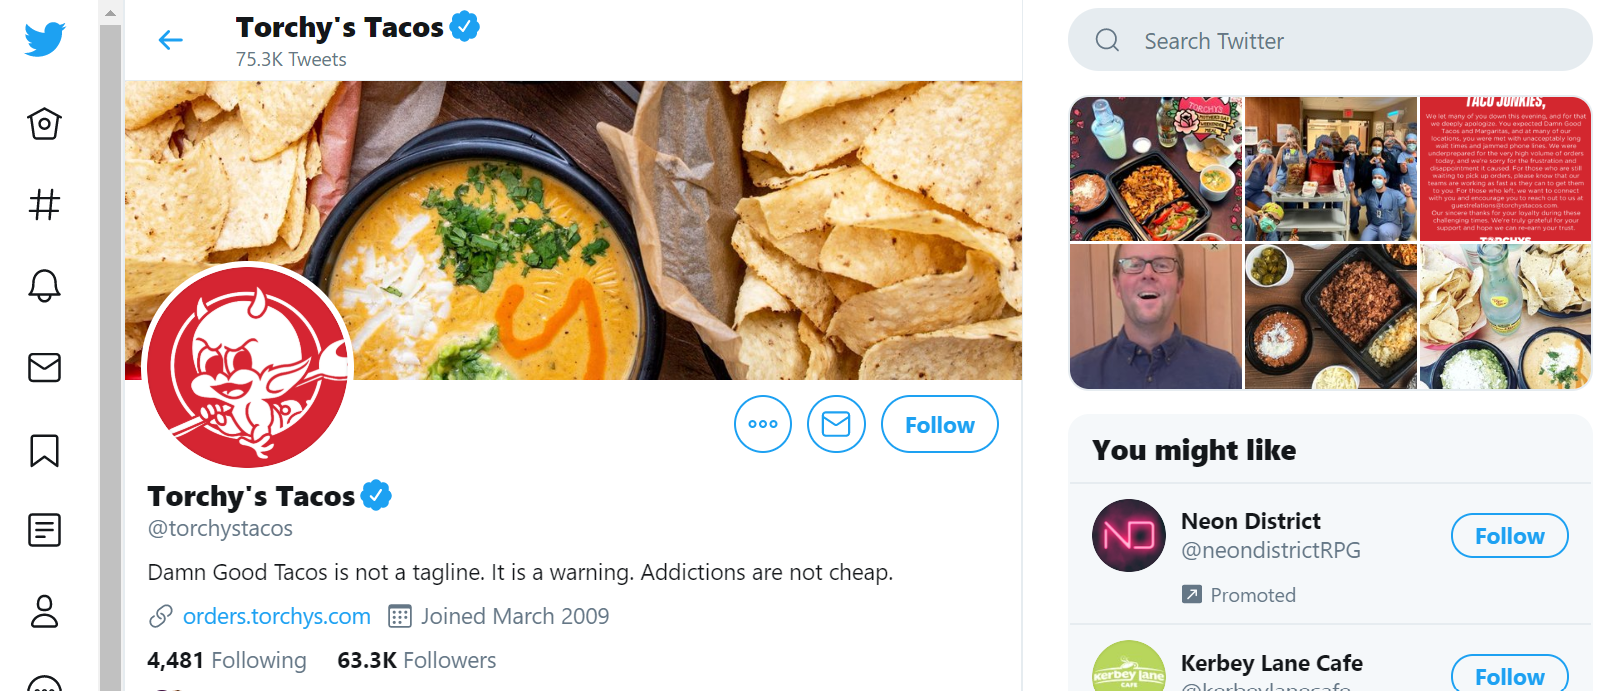 Torchy's Tacos Twitter page, showing recent posts and a header image of tortilla chips and queso